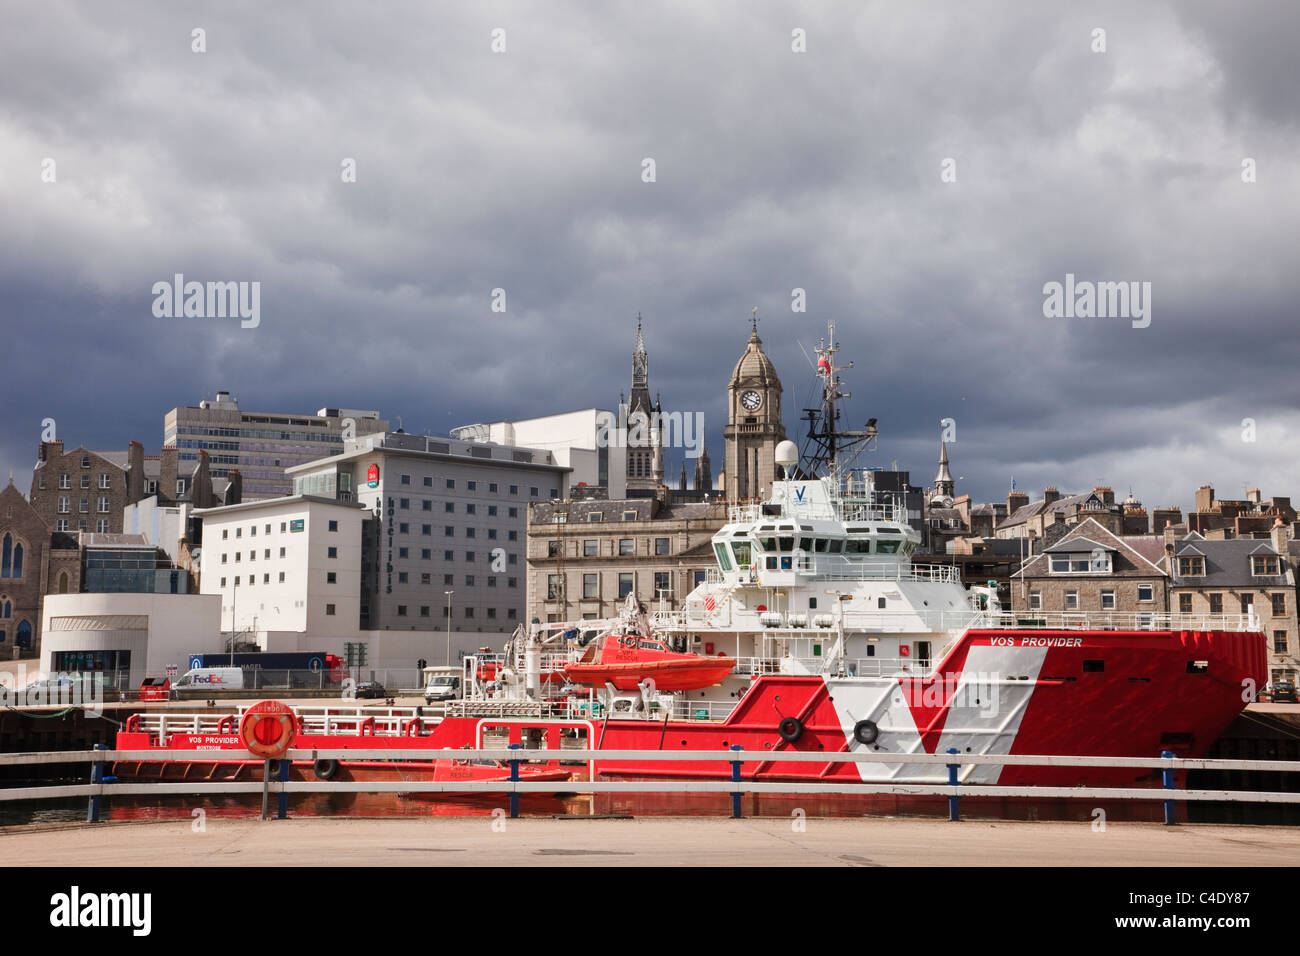 Aberdeen, Scotland, UK. VOS Provider a VROON shipping group North Sea offshore oil supply ship in dock with city - Stock Image